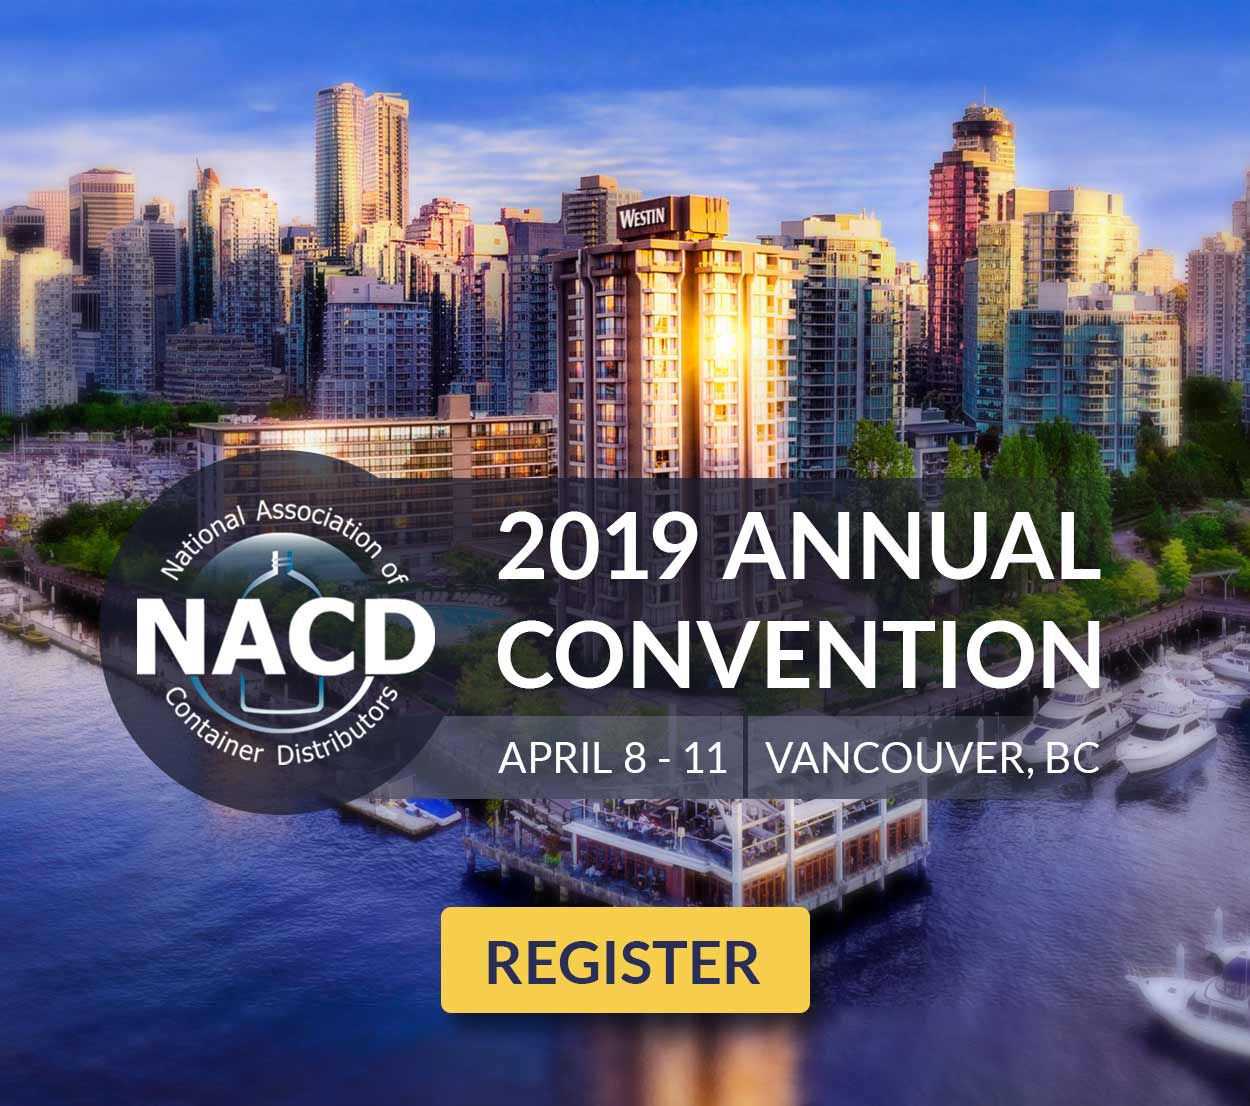 NACD 2019 Annual Meeting – April 8-11, Westin Bayshore Vancouver